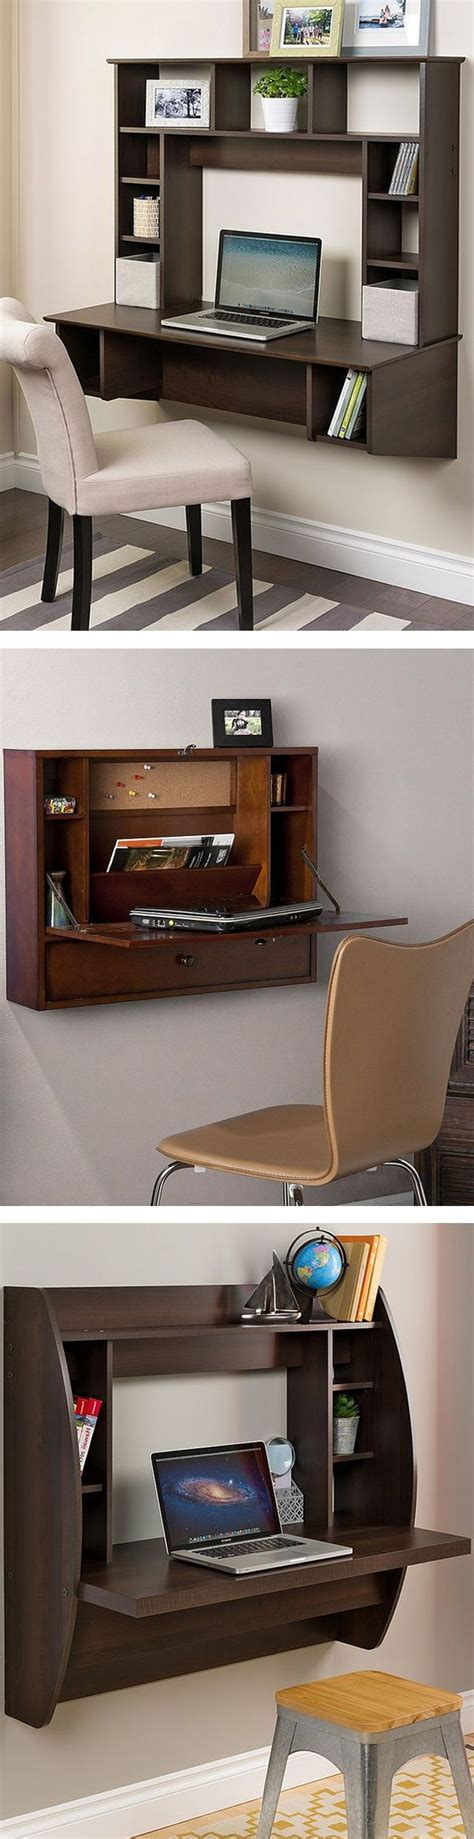 Floating Office Desk Best 25 Wall Mounted Desk Ideas On Pinterest Floating Desk Floating Wall Desk And Wall